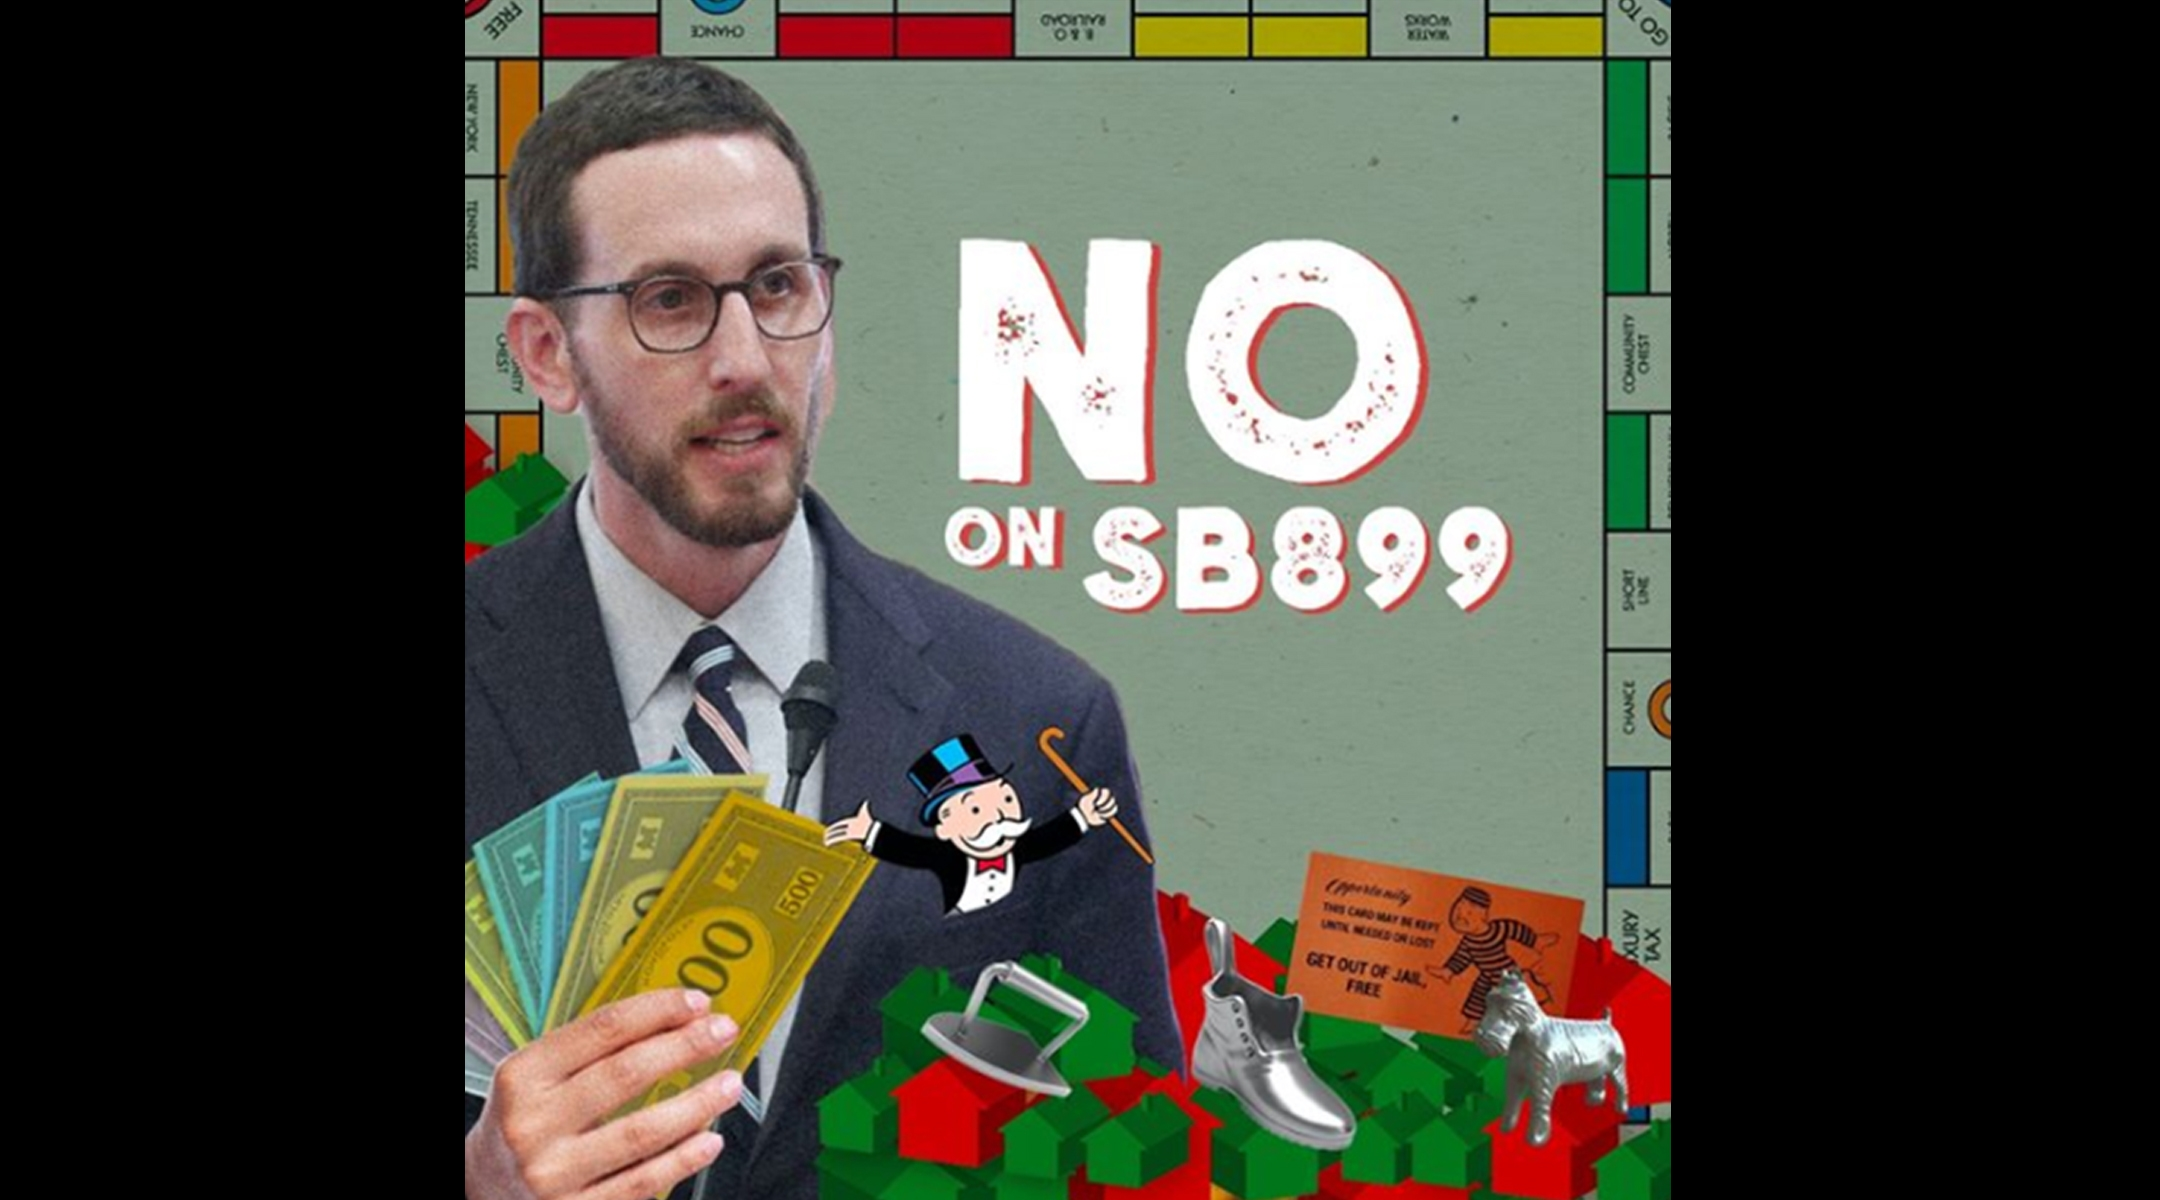 Facebook ad showed a Jewish California state senator clutching Monopoly money